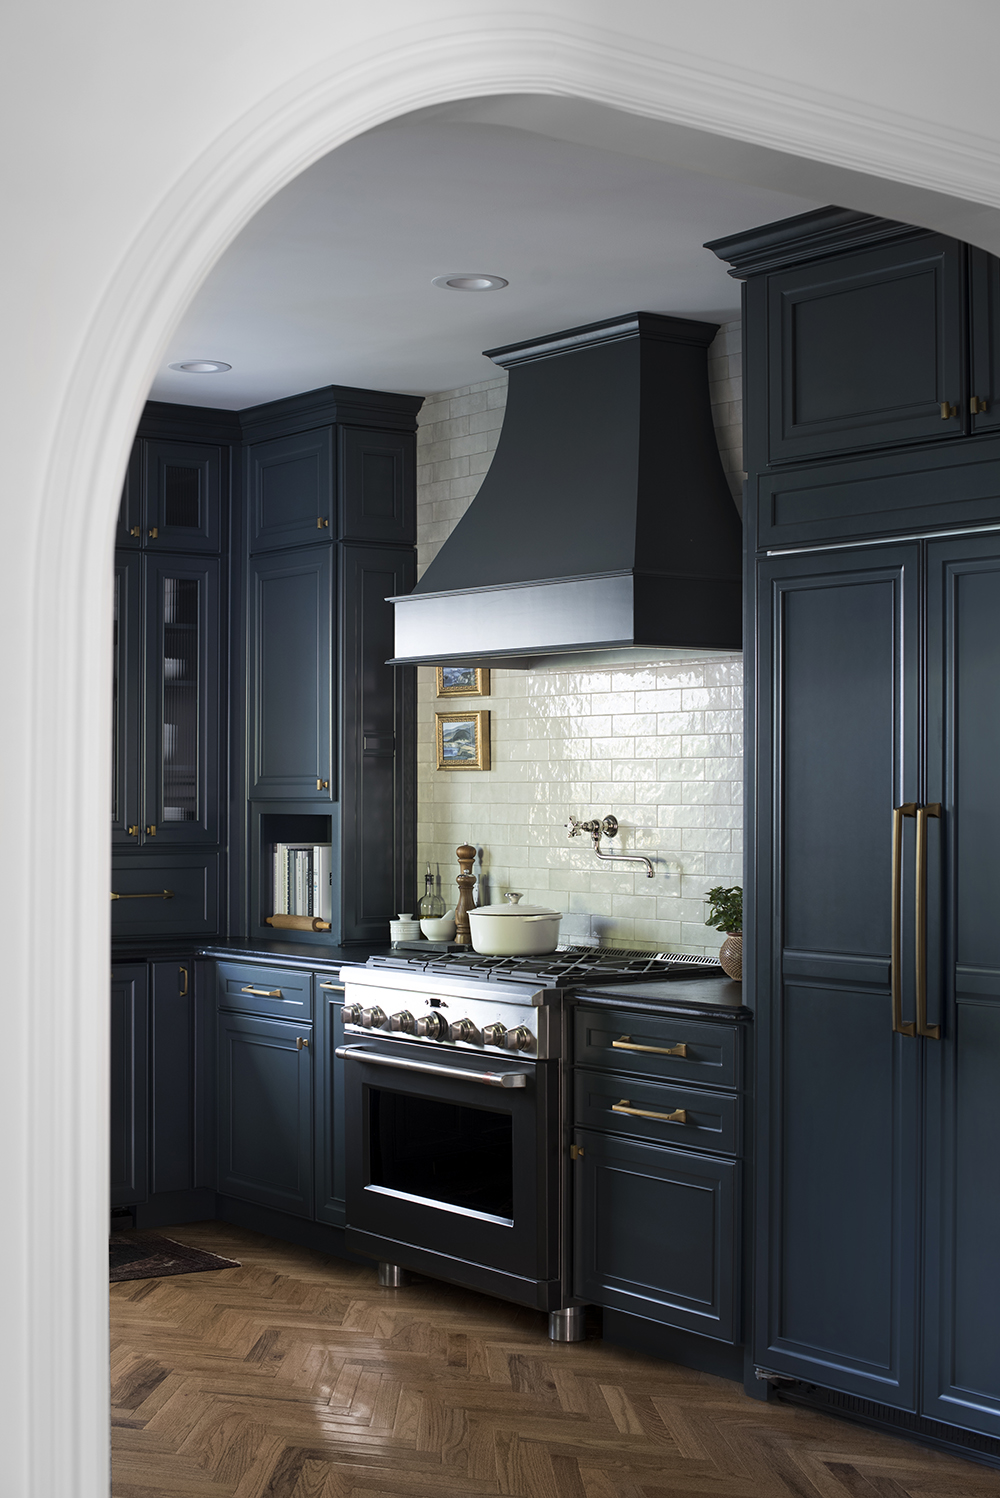 Our Dark Moody Kitchen Reveal Room For Tuesday